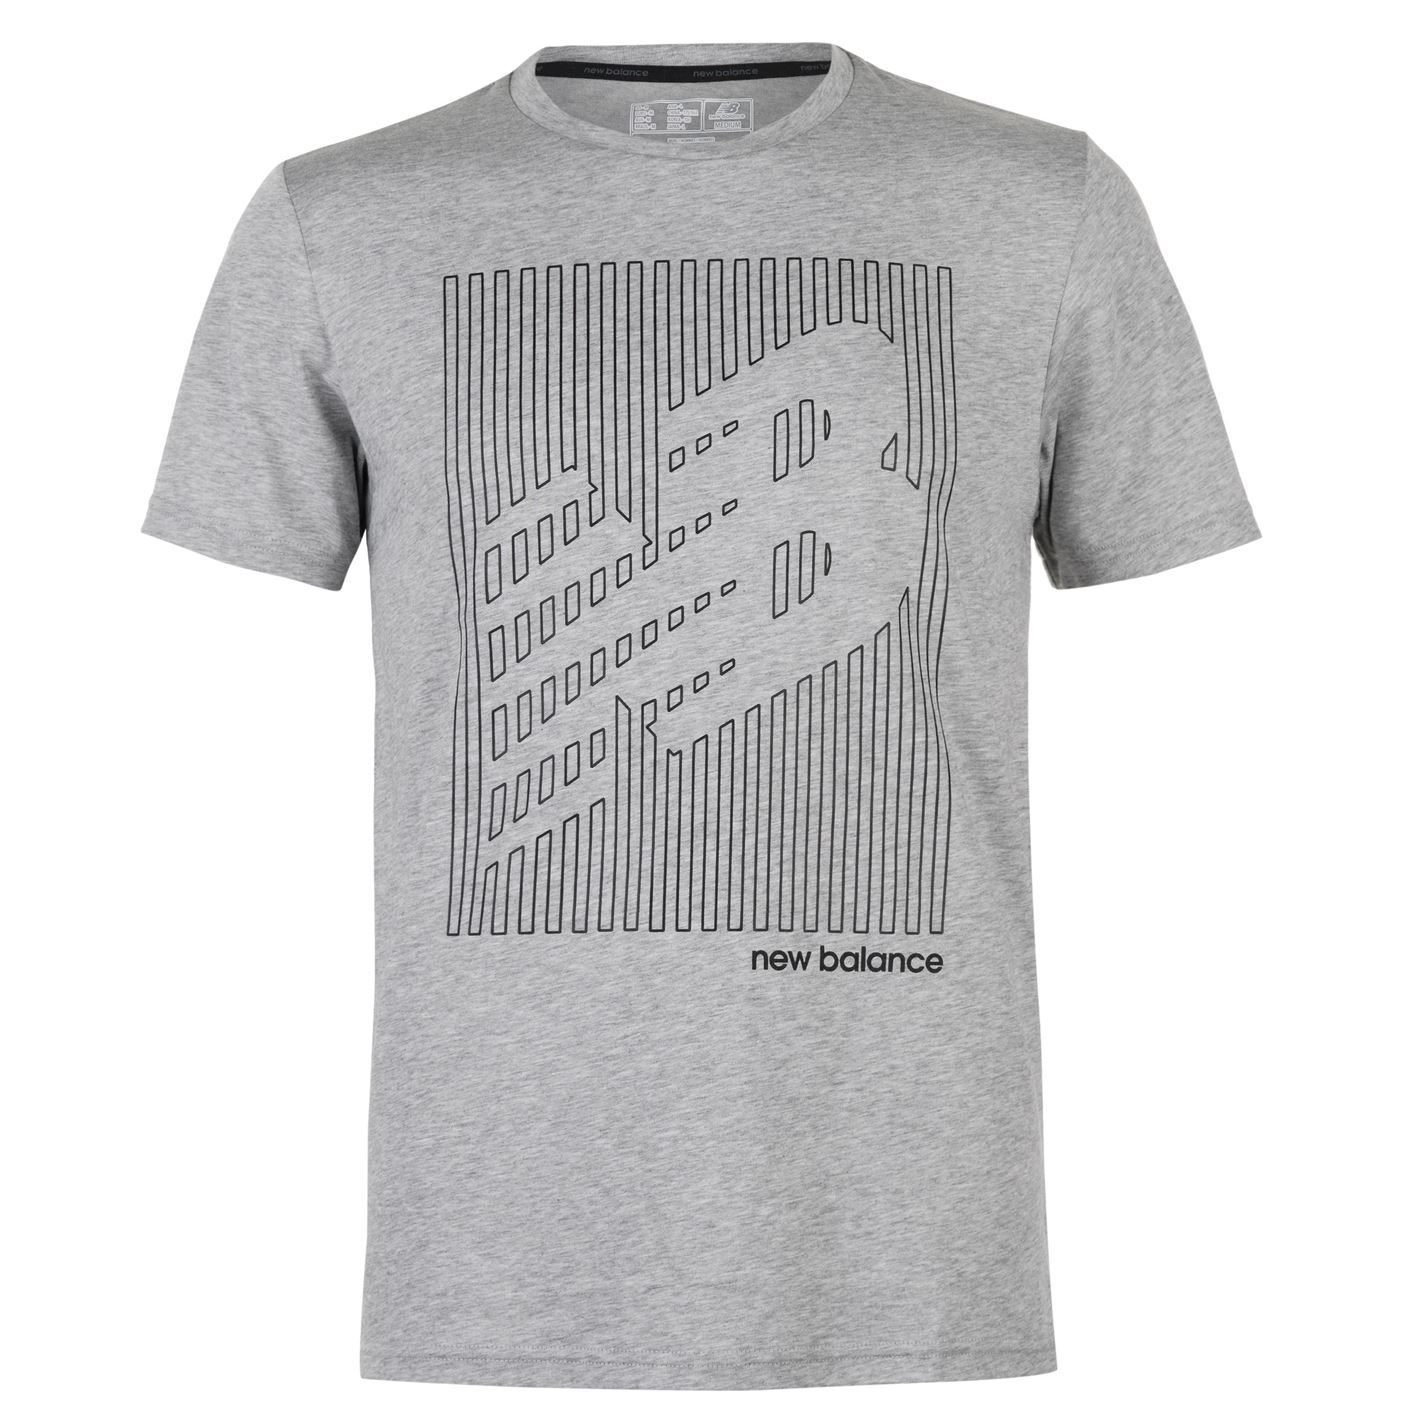 new balance mens tshirt